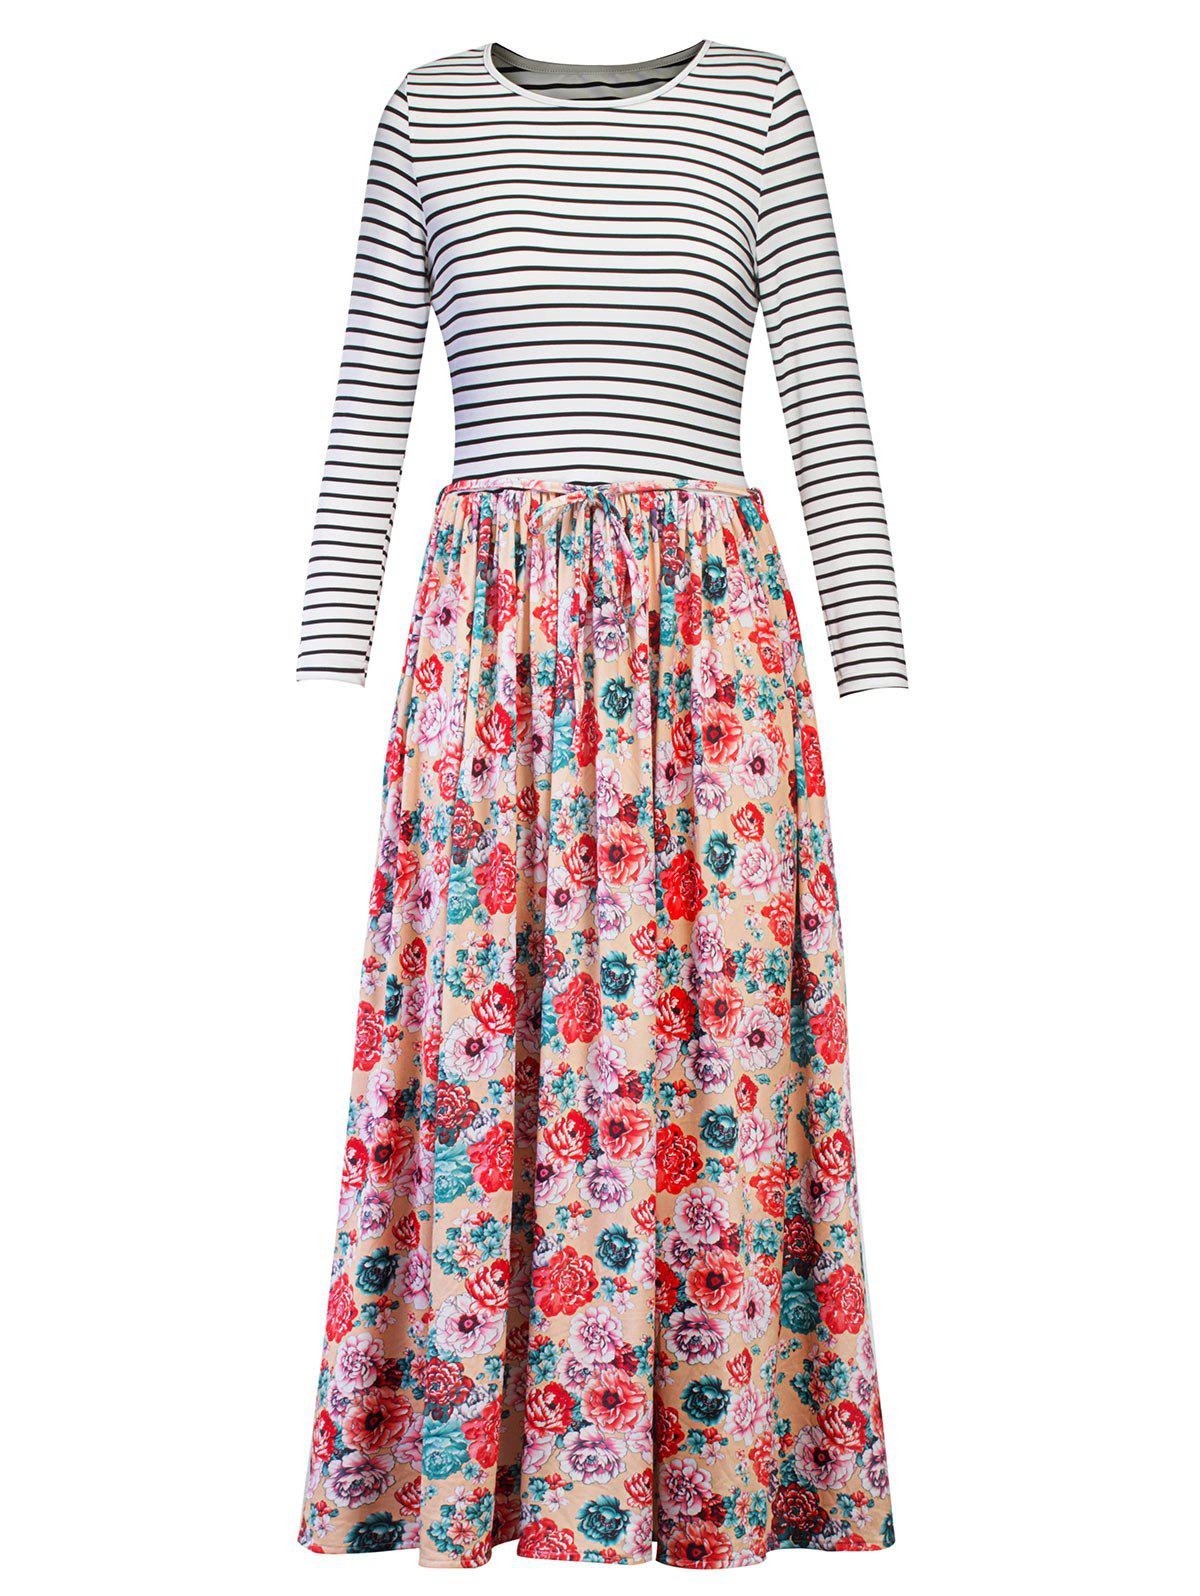 Floral Print Striped Maxi Dress - FLORAL S